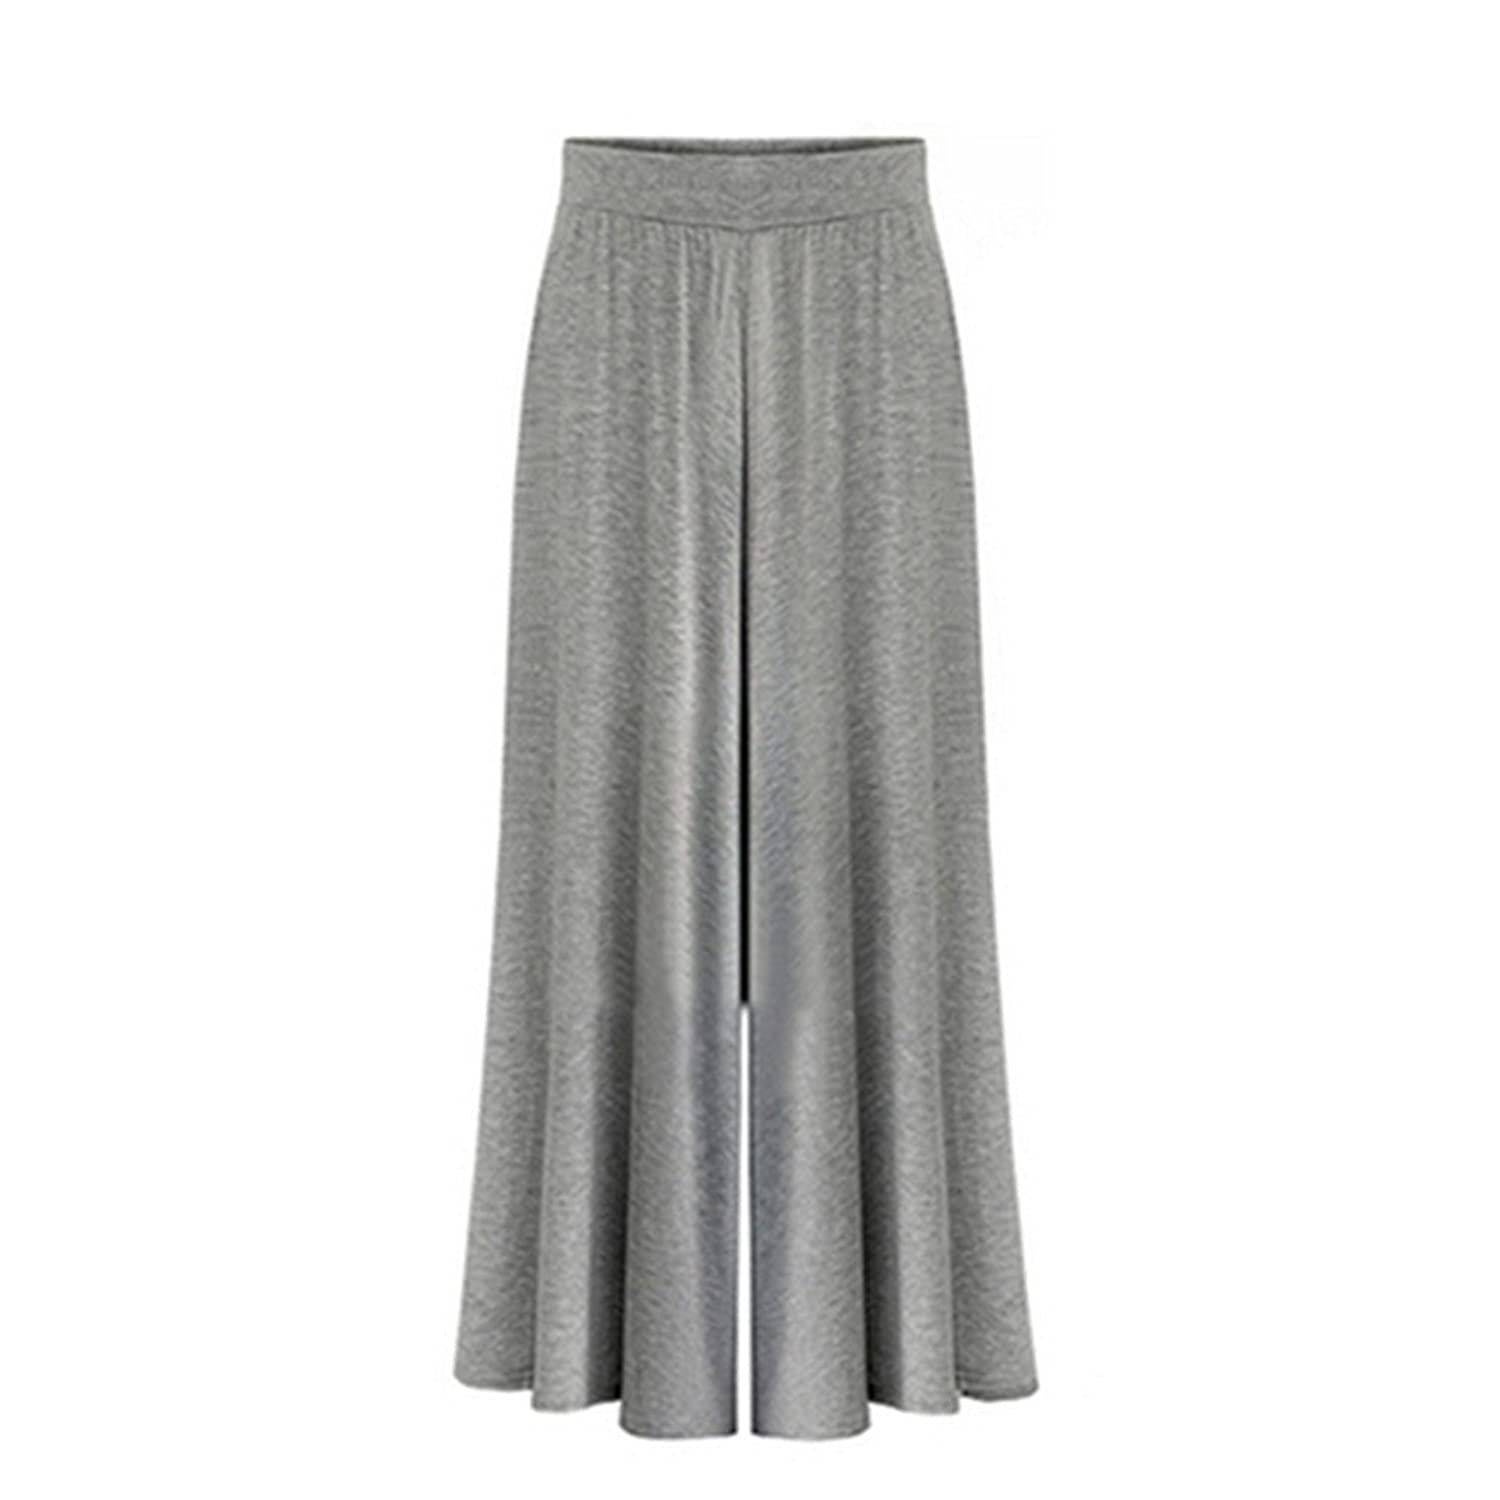 Ukiss Women's High Elastic Waist Full Length Pleated Wide Leg Pants Modal Culottes